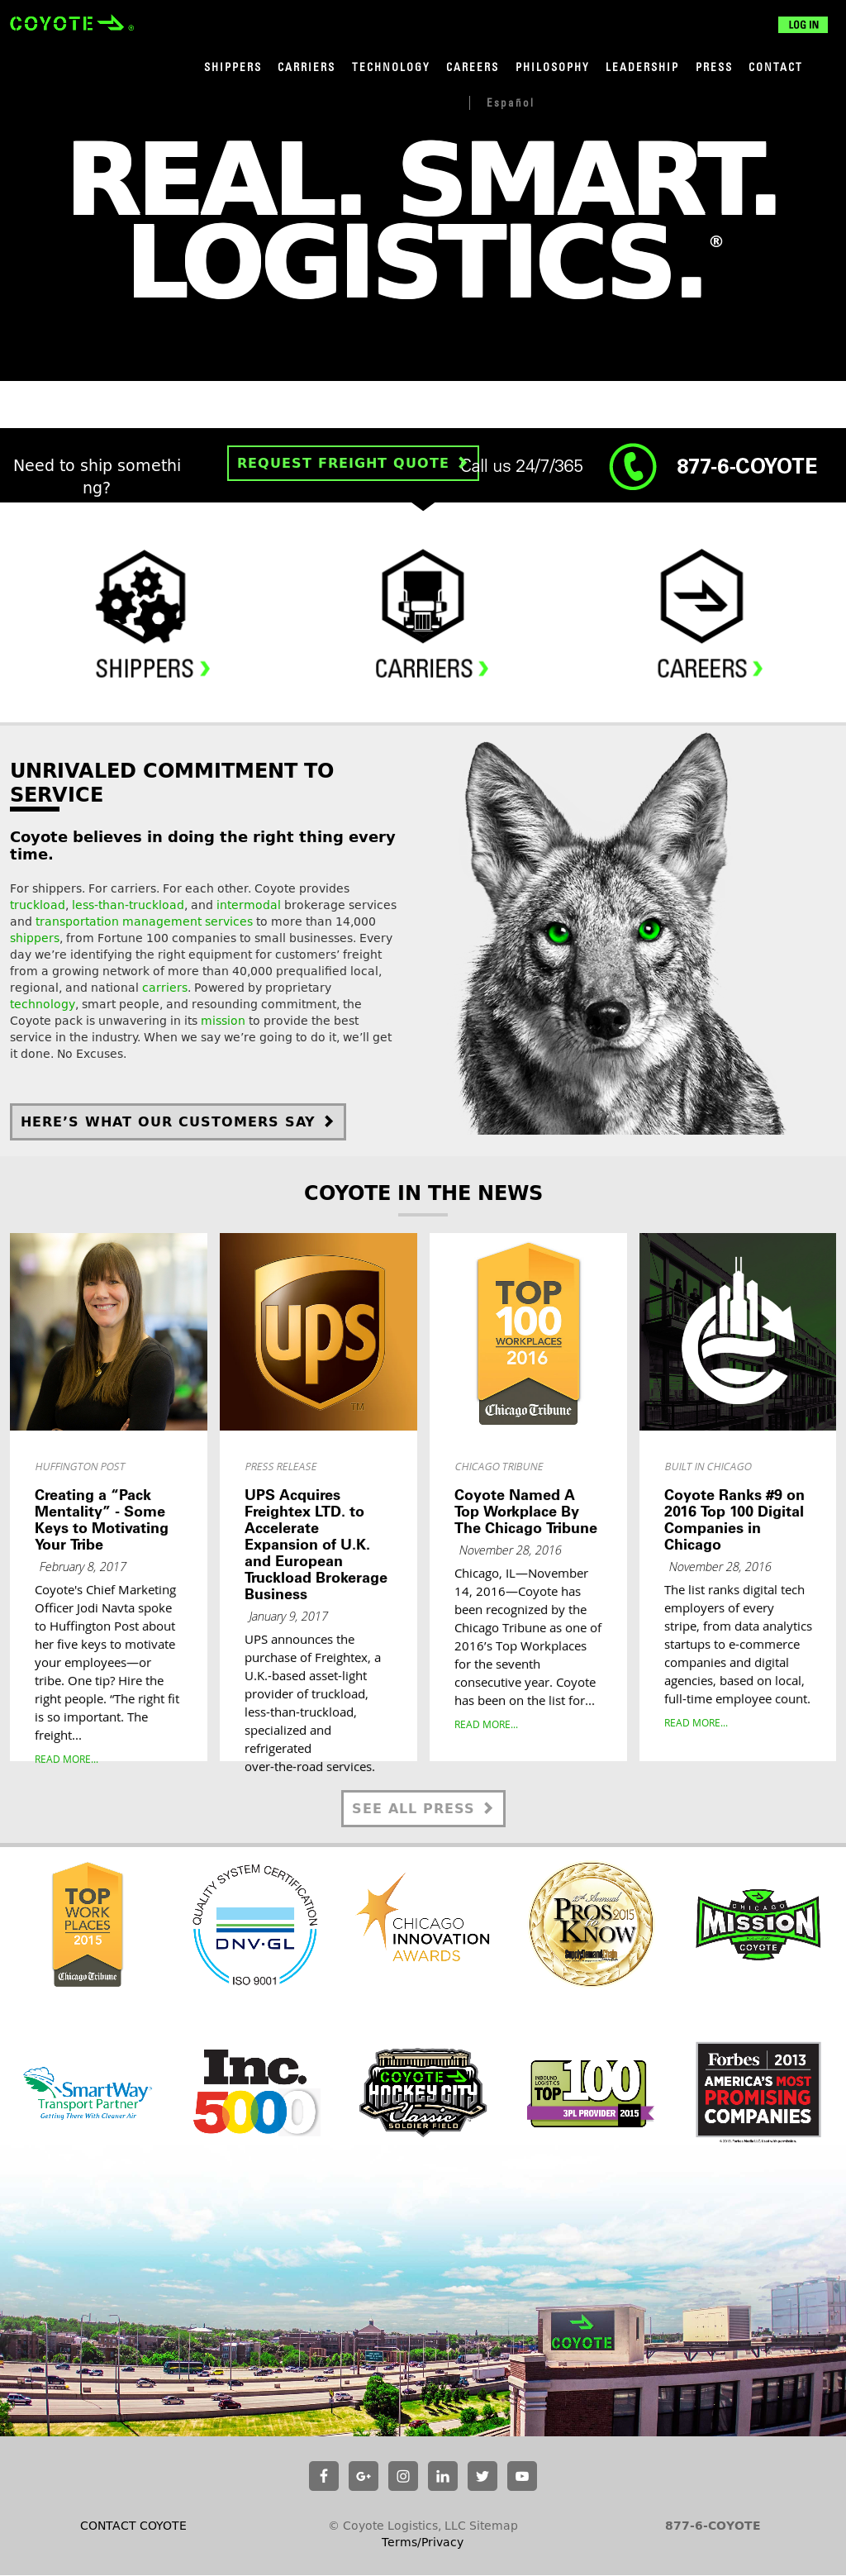 Coyote Competitors, Revenue and Employees - Owler Company